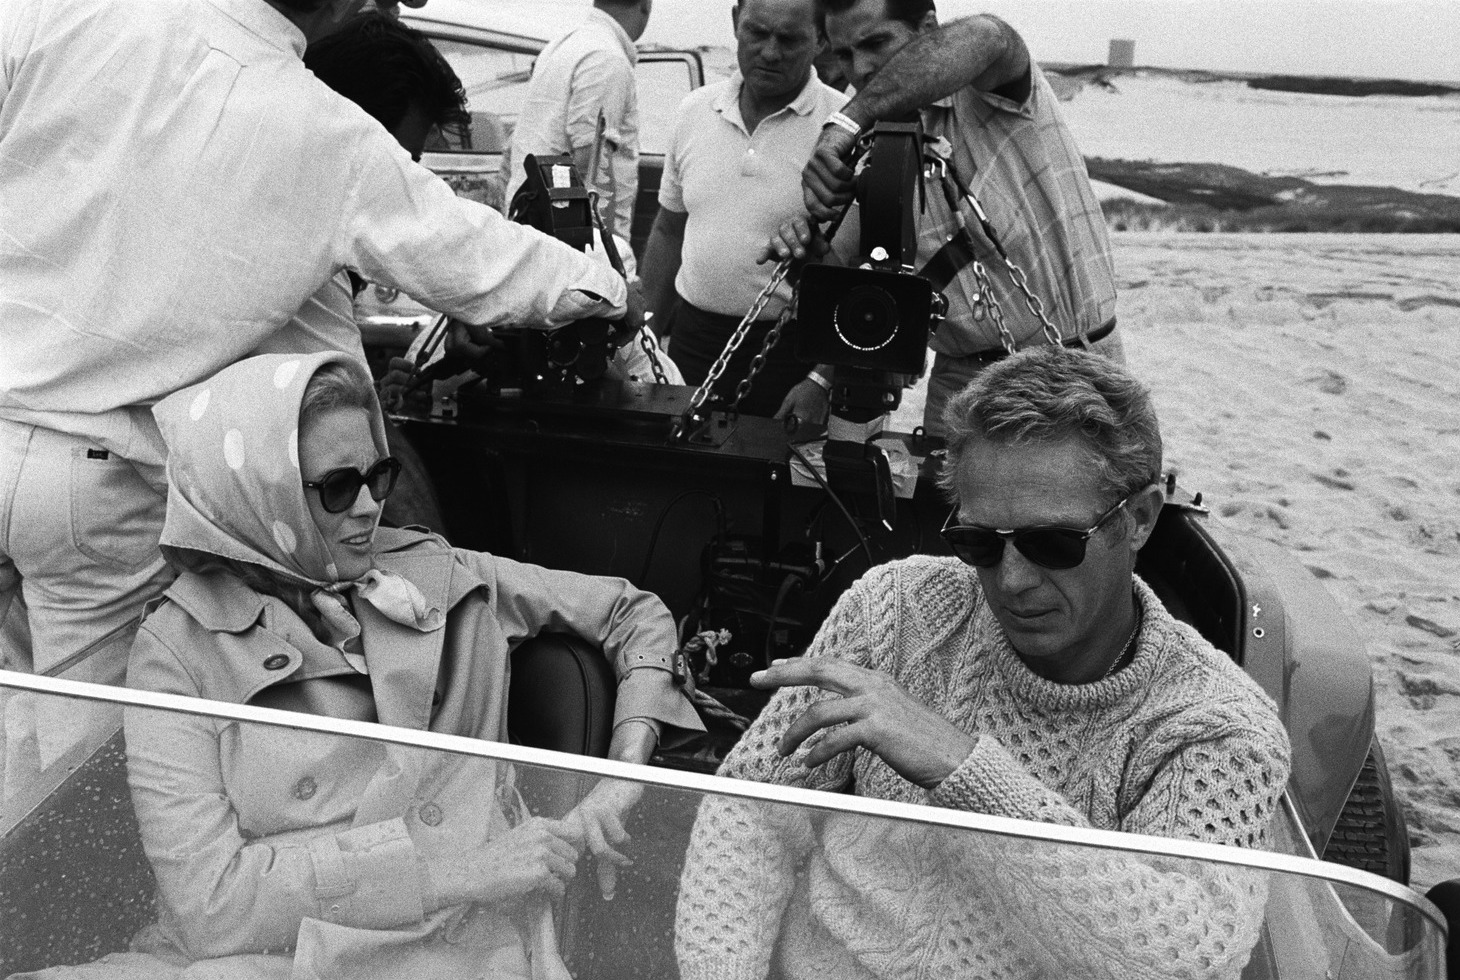 Faye Dunaway,Steve McQueen. The Thomas Crown Affair,1968 riprese https://t.co/OccvcMONja